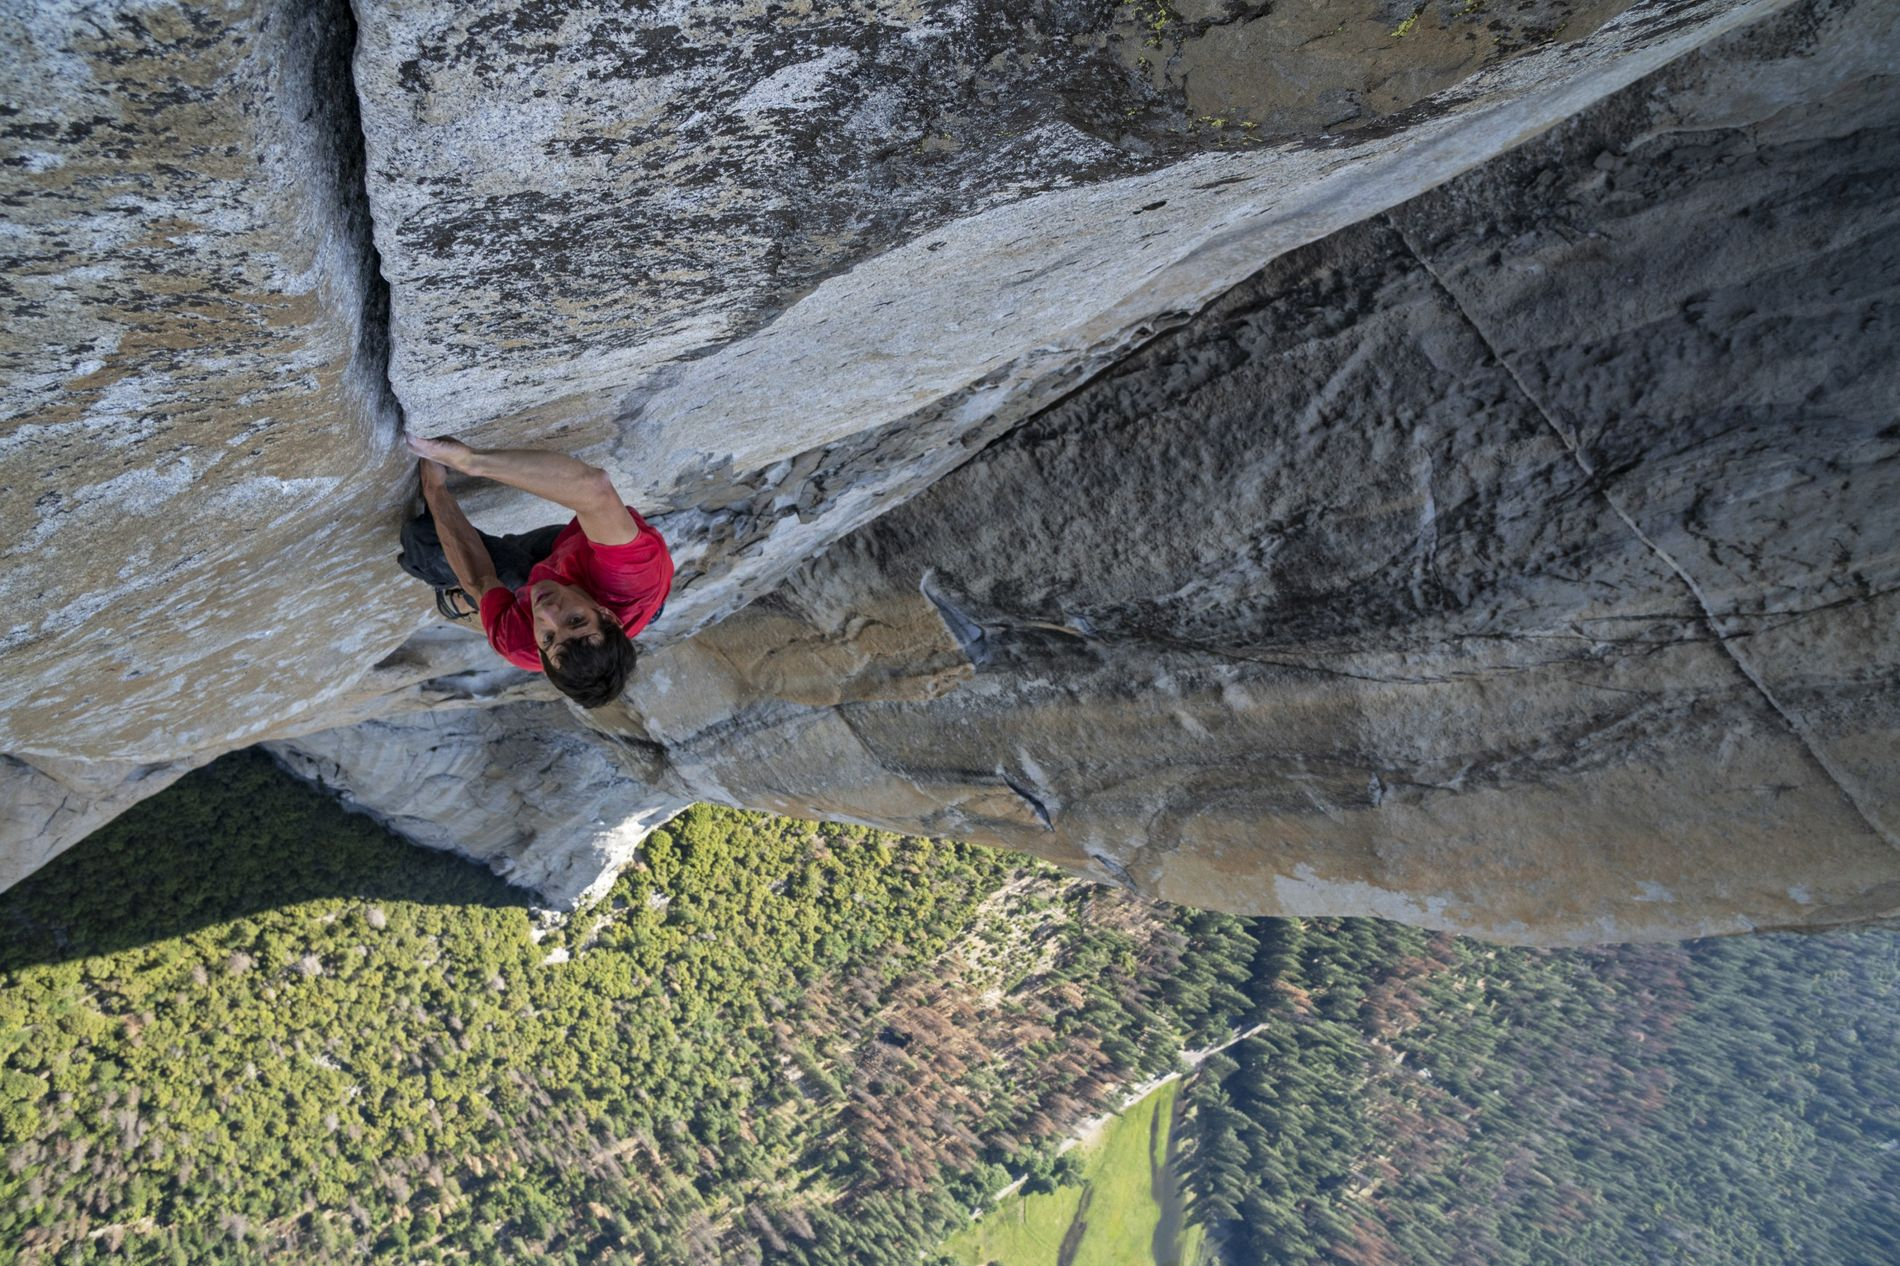 Free Solo: the film making the world hold its breath